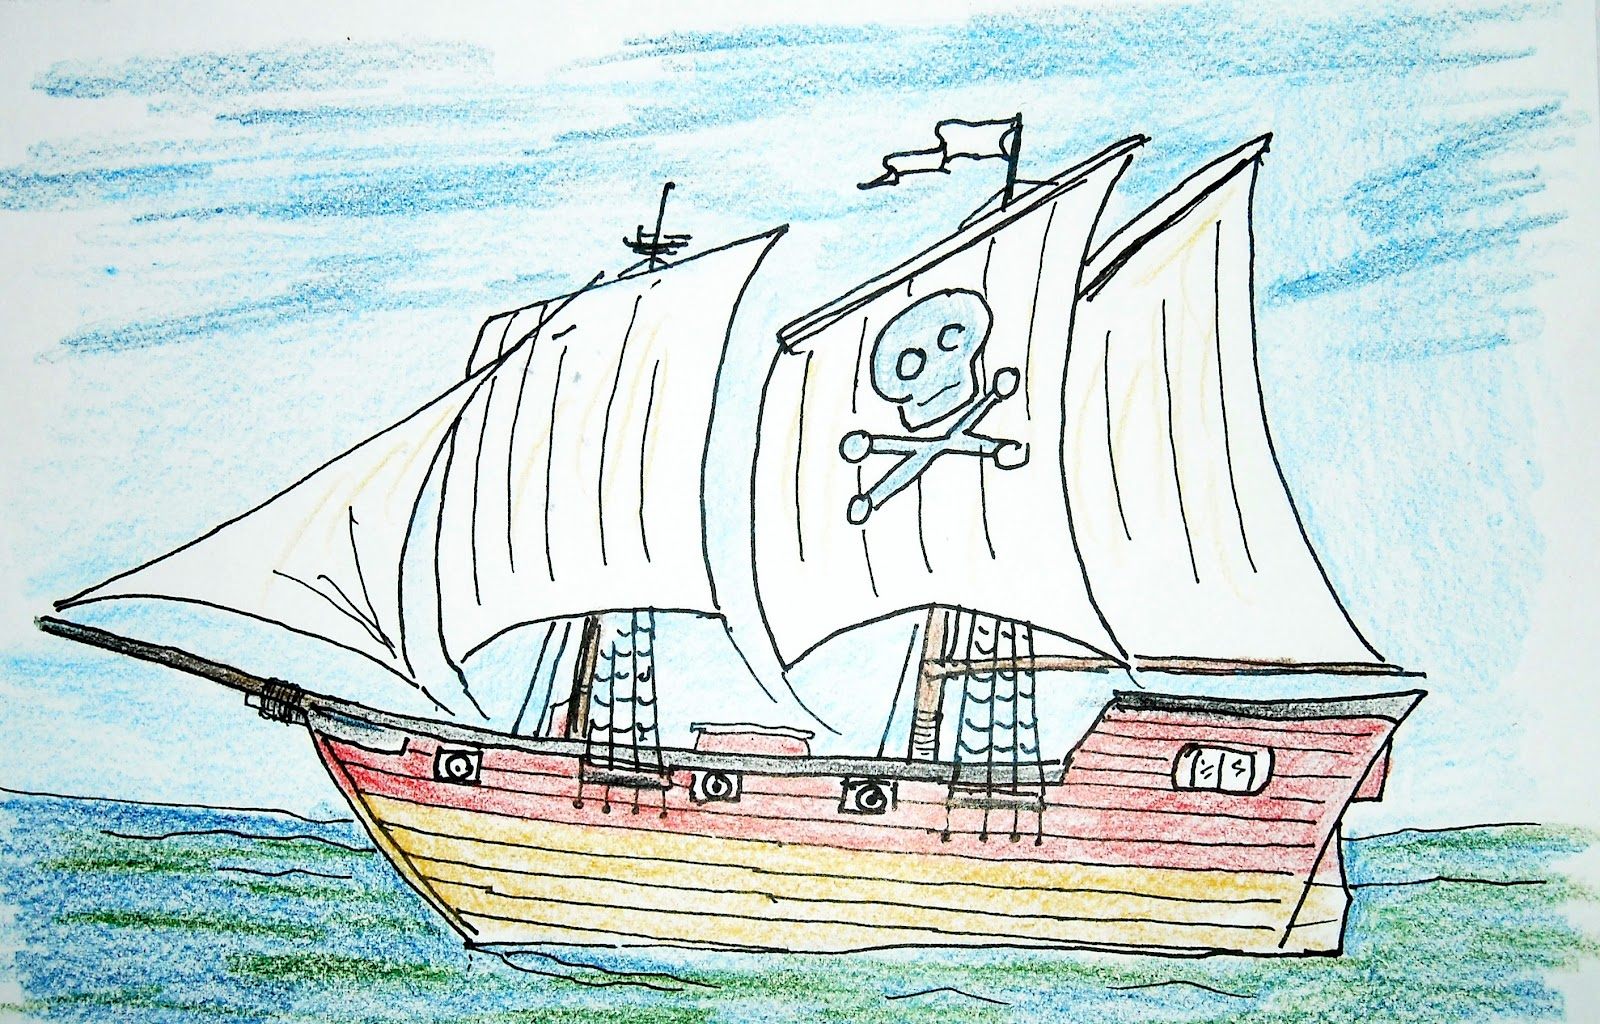 Pirate ship drawing - photo#16